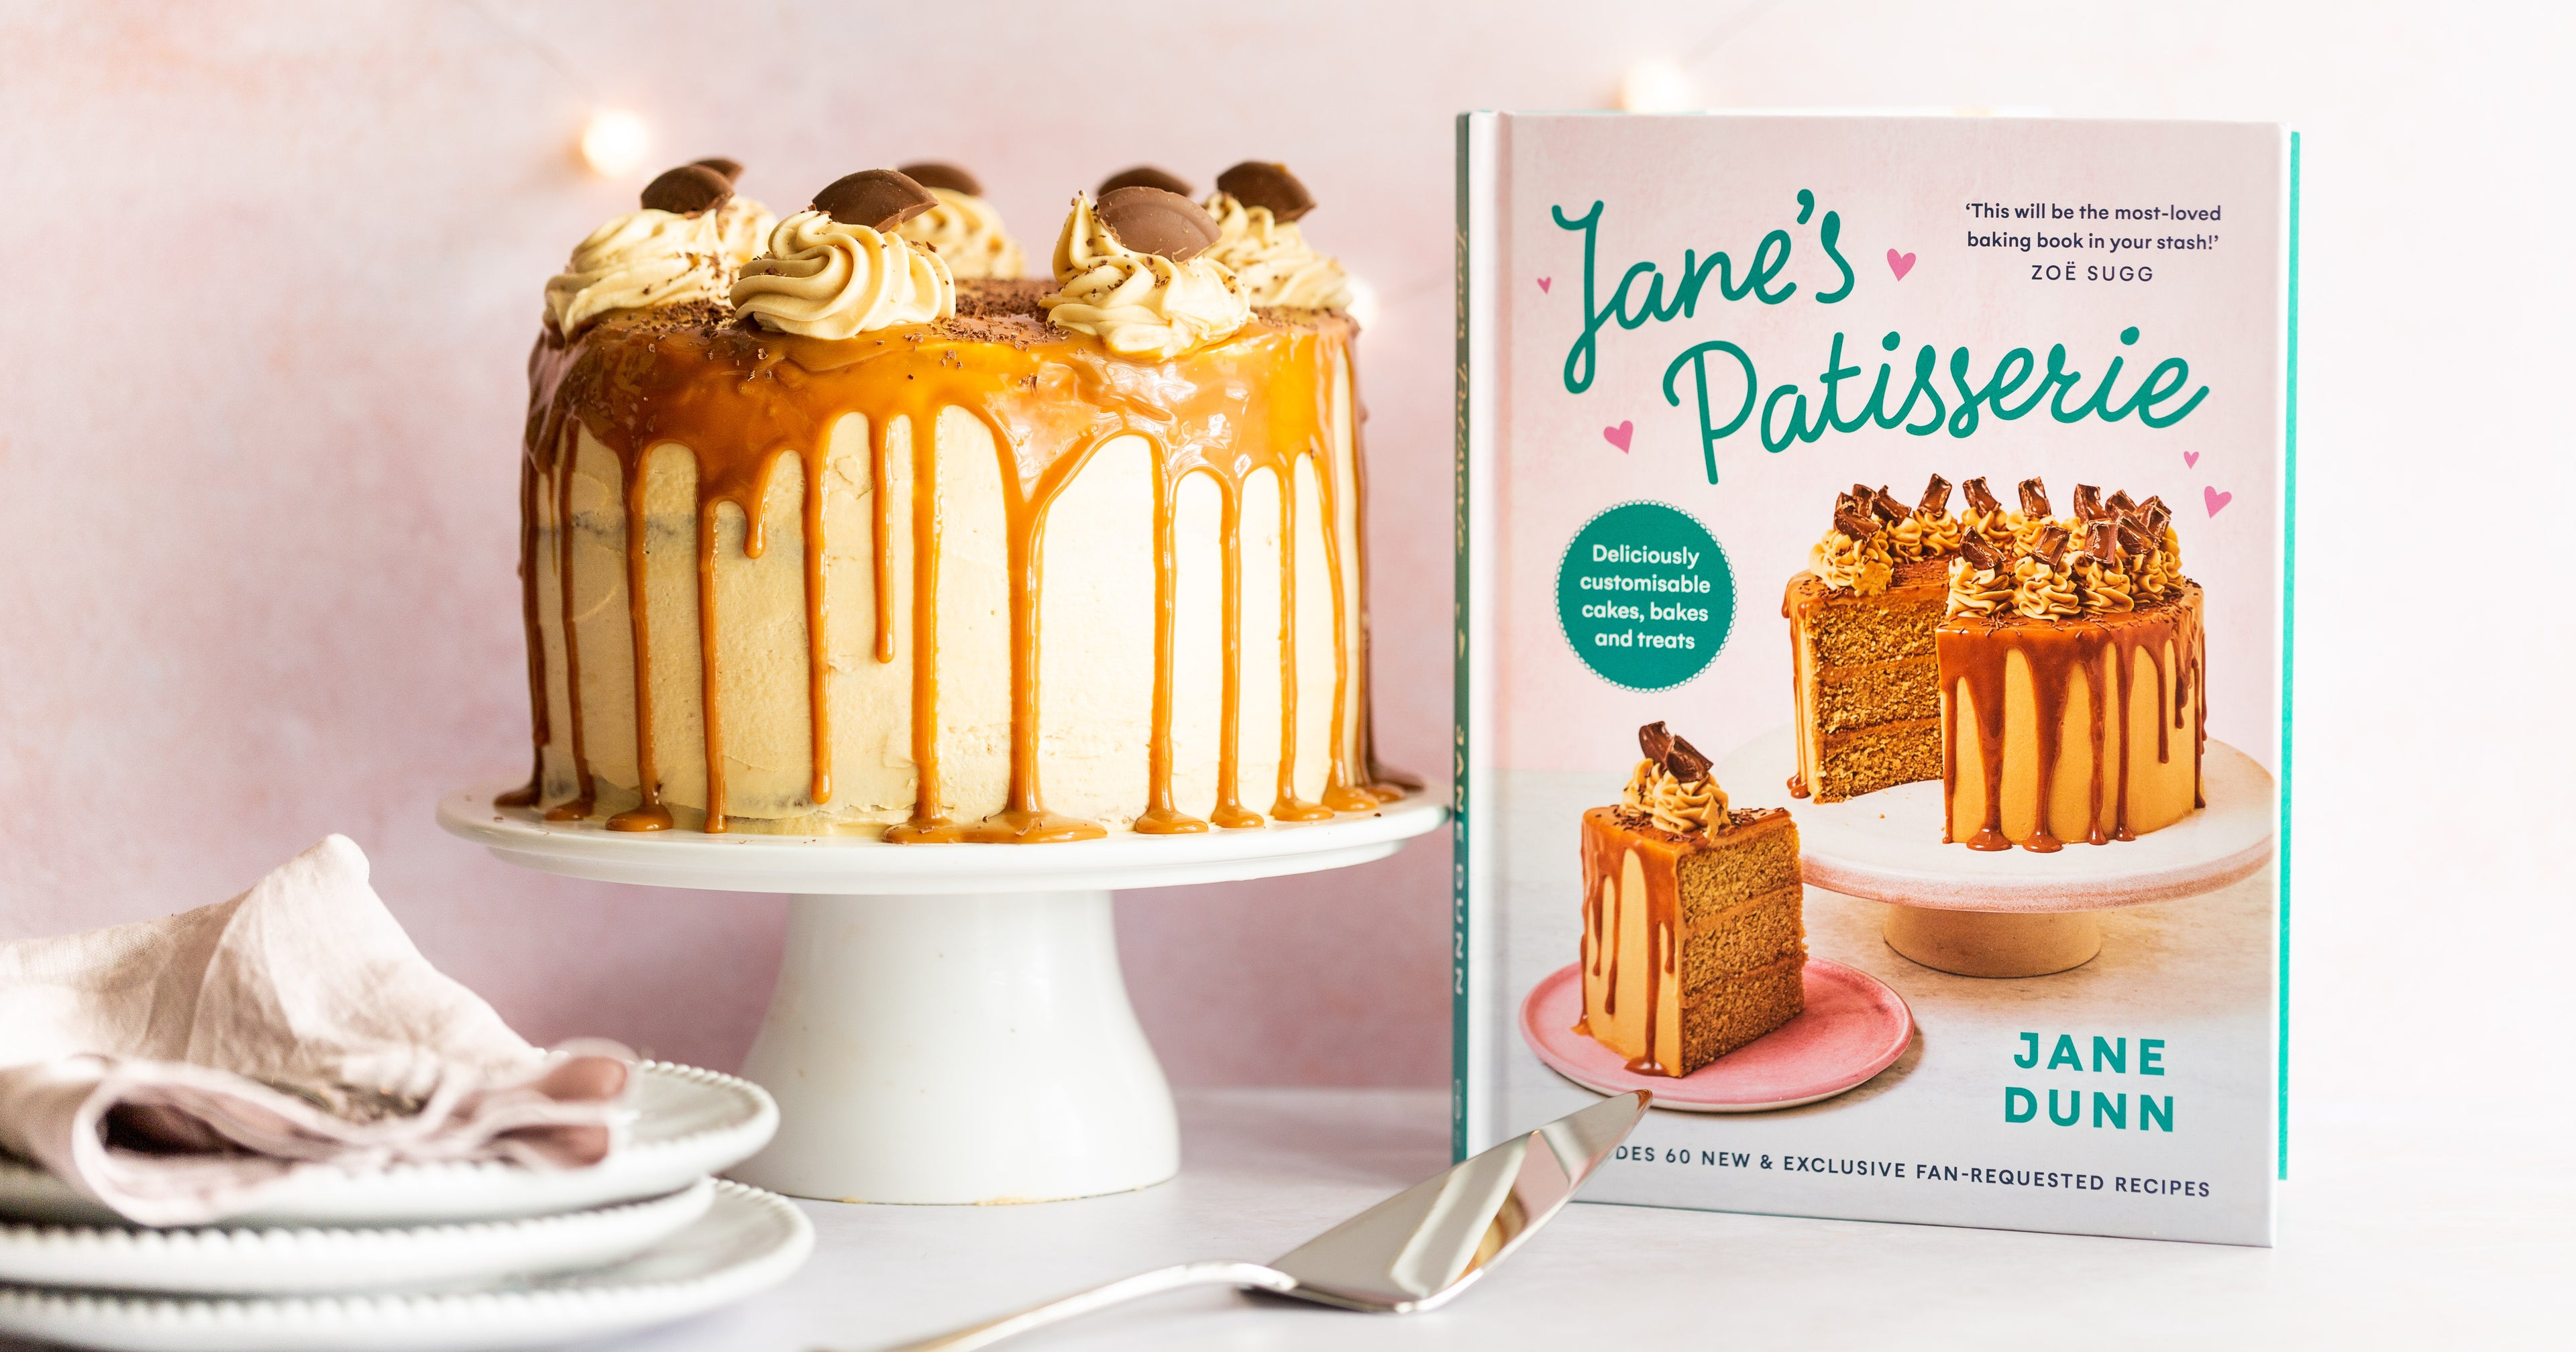 Cake on cake stand with caramel dripping down the side. A stack of white plates. A cake slice and a recipe book